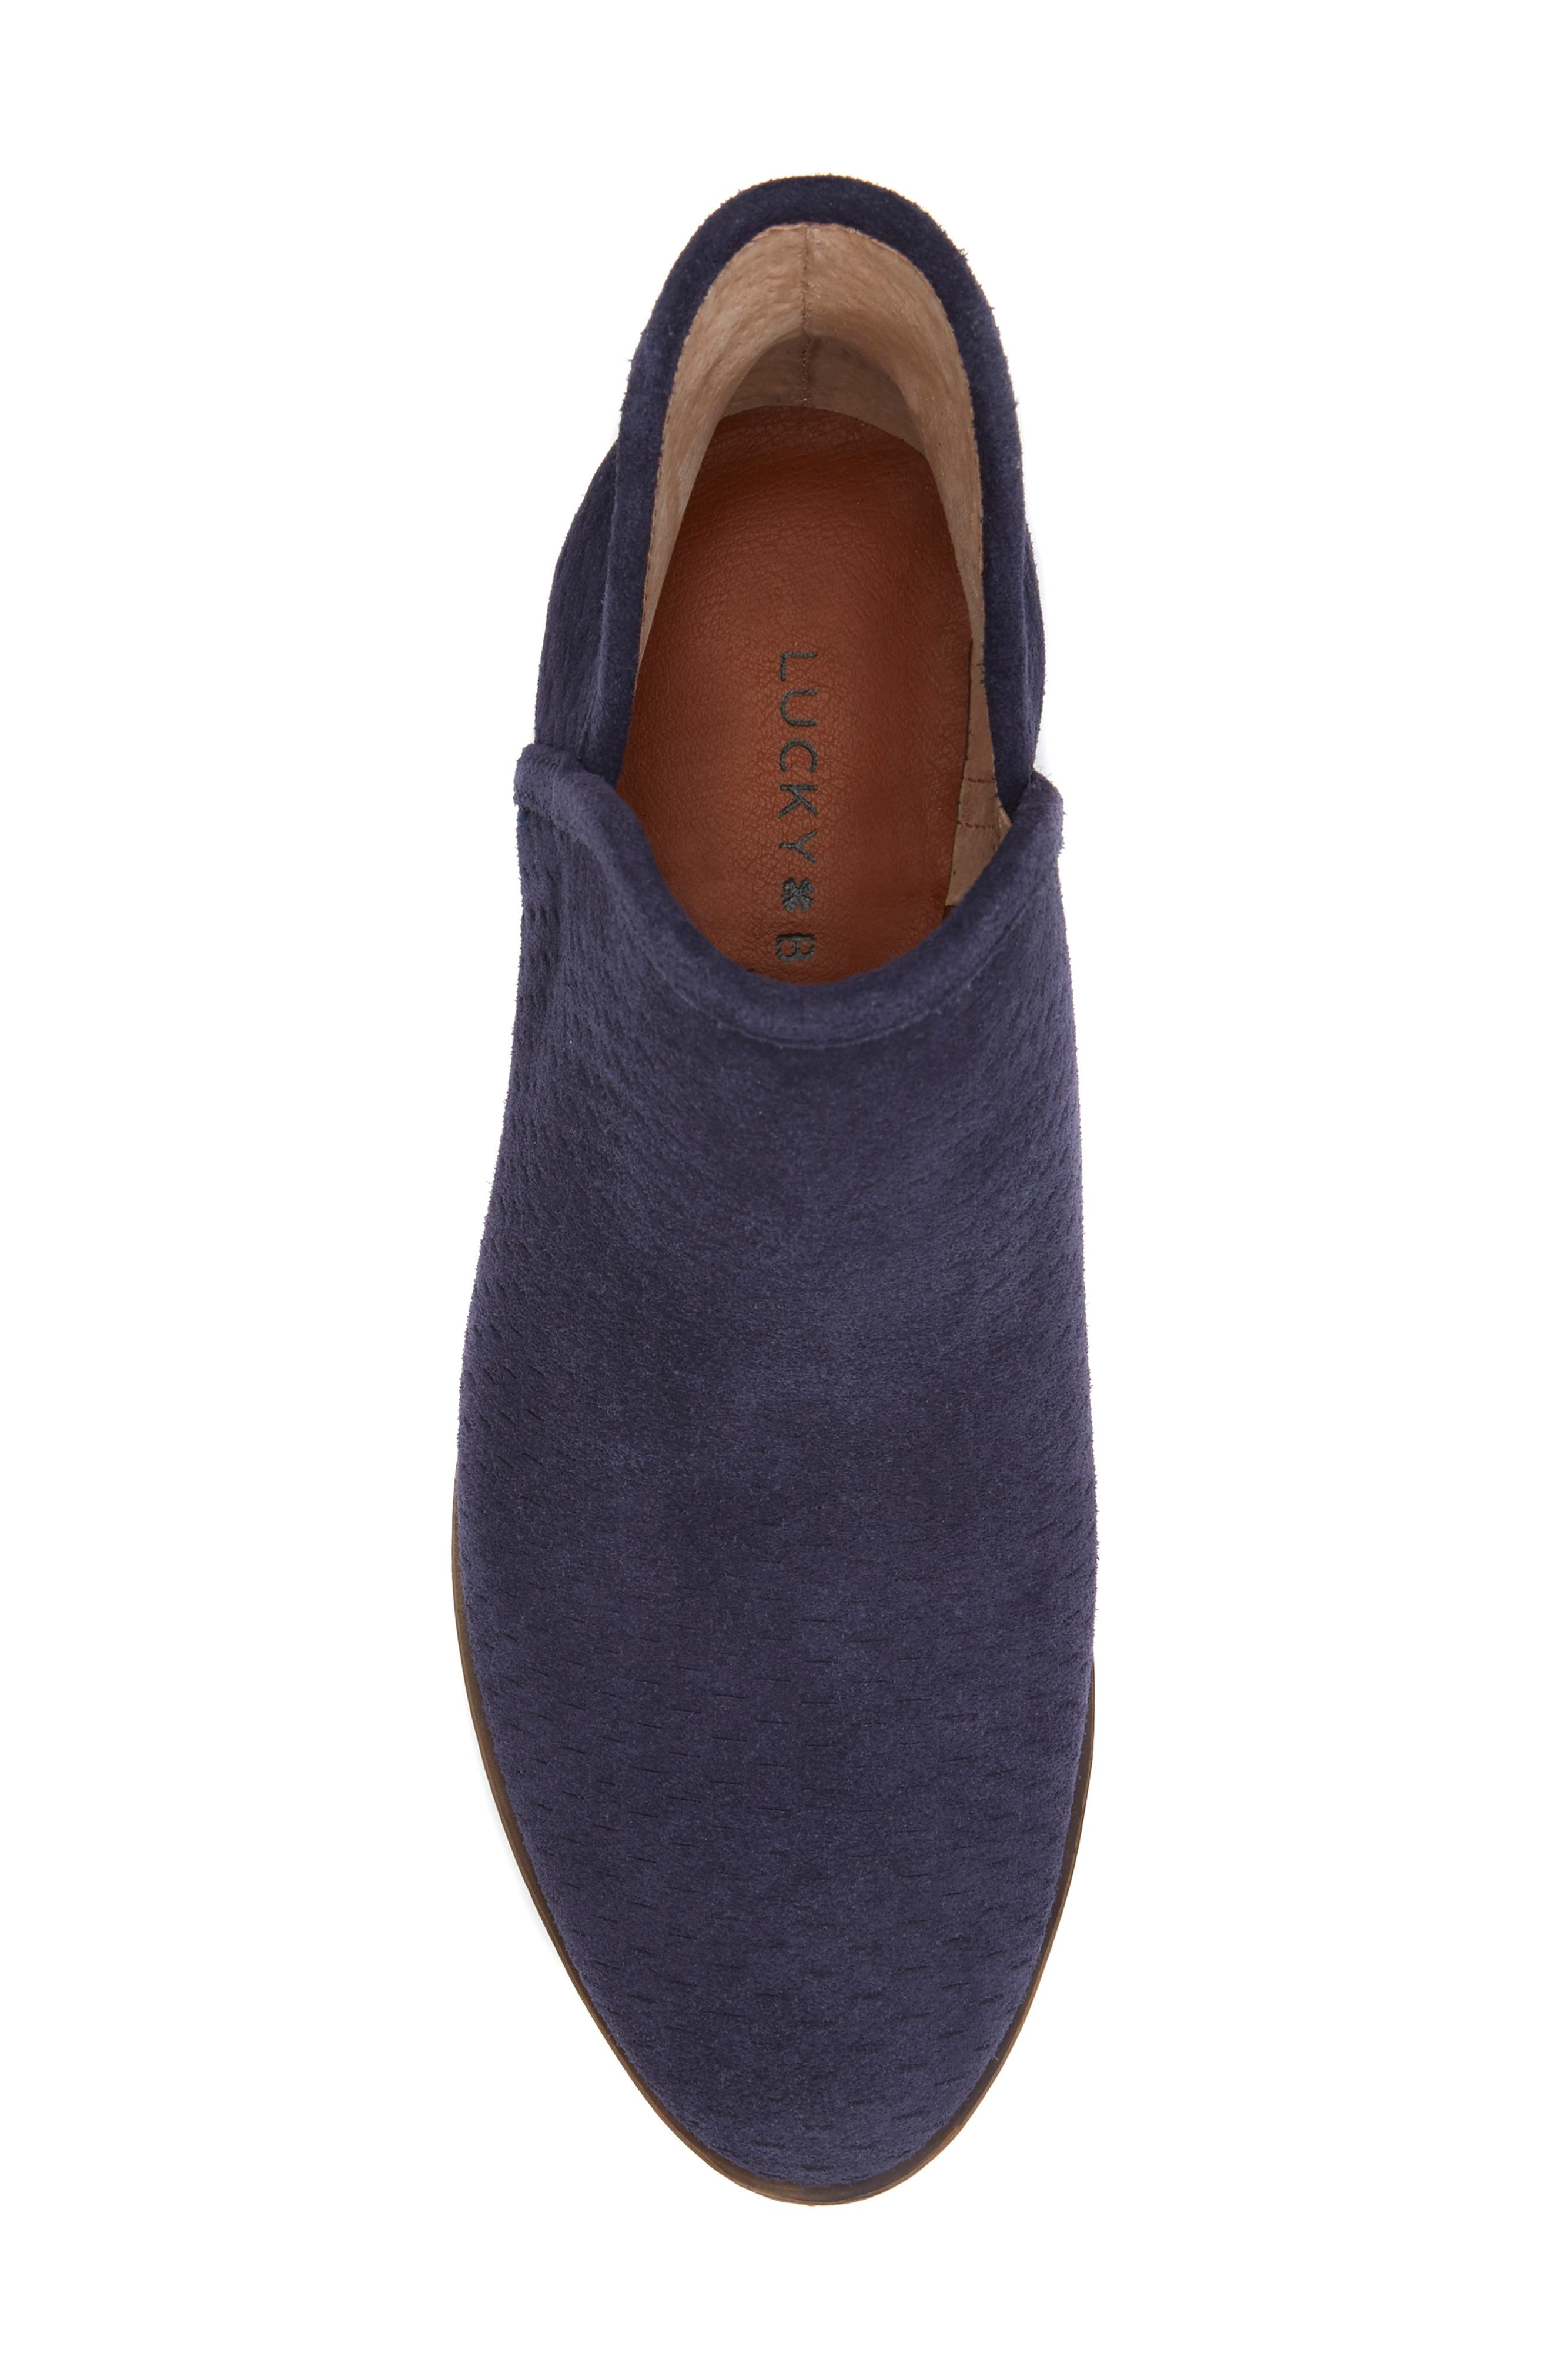 Baley Bootie,                             Alternate thumbnail 3, color,                             MOROCCAN BLUE SUEDE